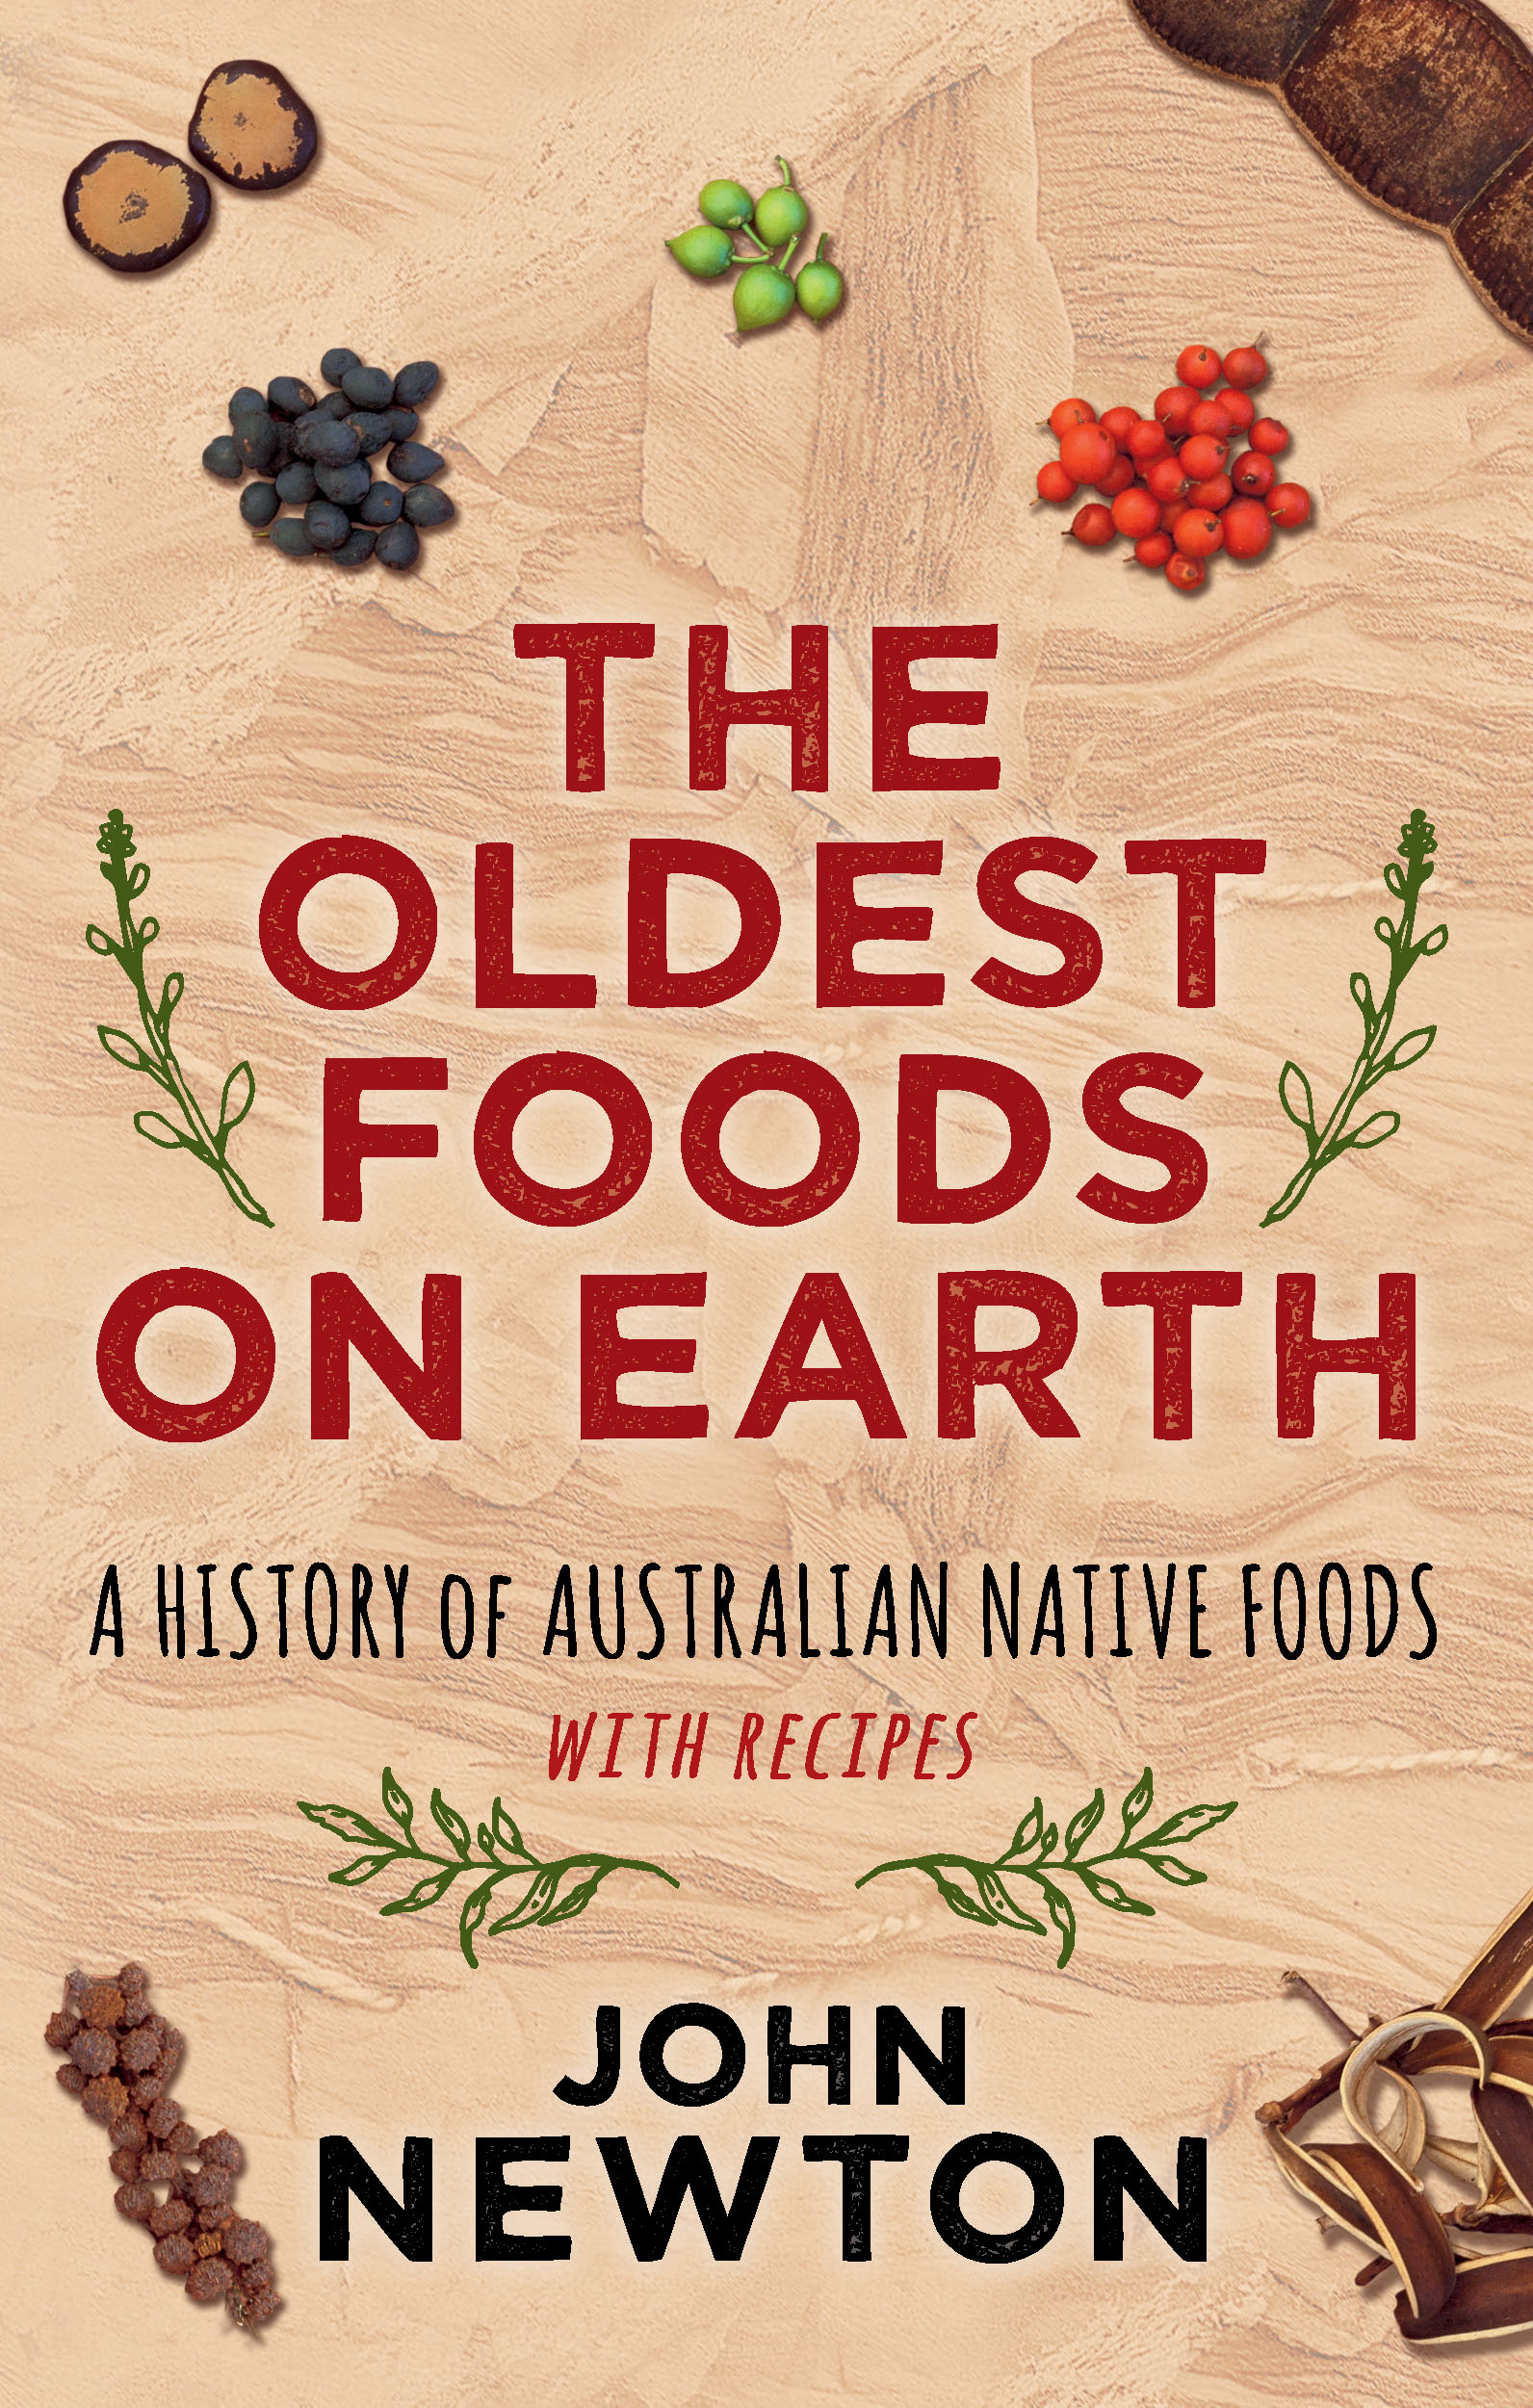 Newsouth books the oldest foods on earth a history of australian native foods with recipes forumfinder Choice Image